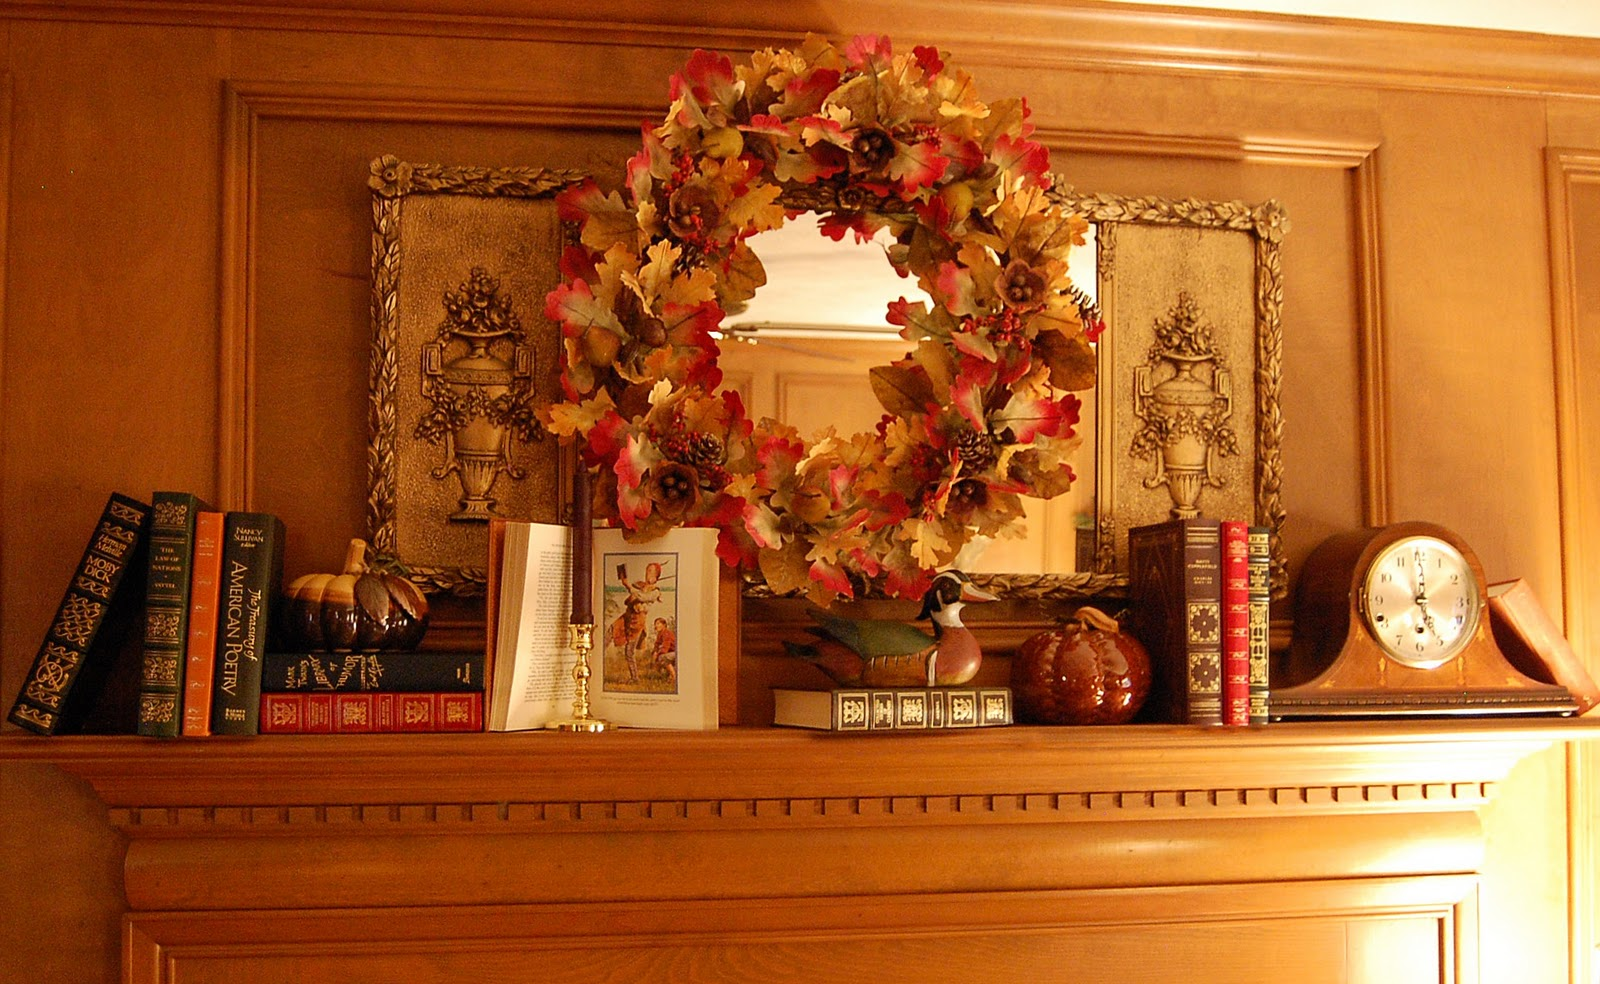 decorate a fireplace mantel for fall or autumn with books decorate a fireplace mantel for fall or autumn with books pumpkins and a fall wreath